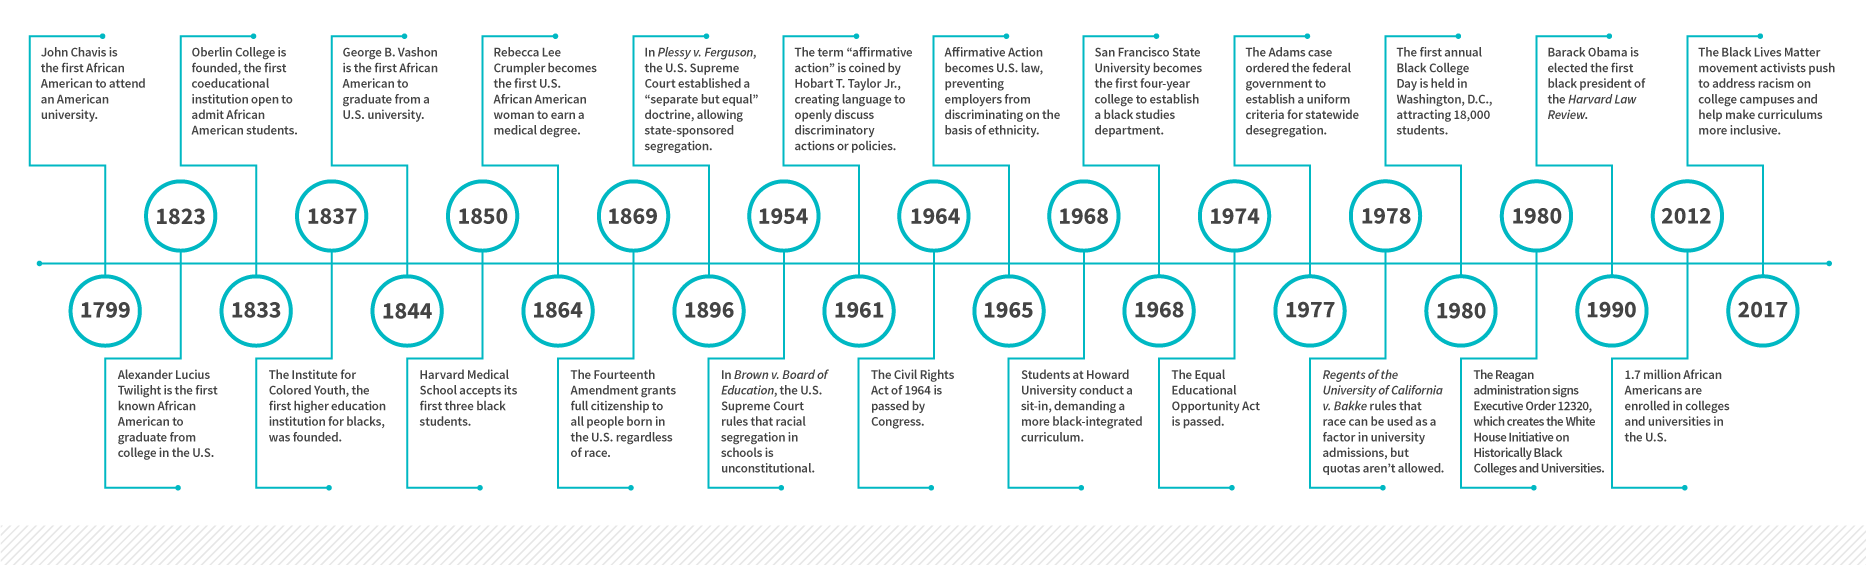 Educational Milestones for African American Students in the U.S.